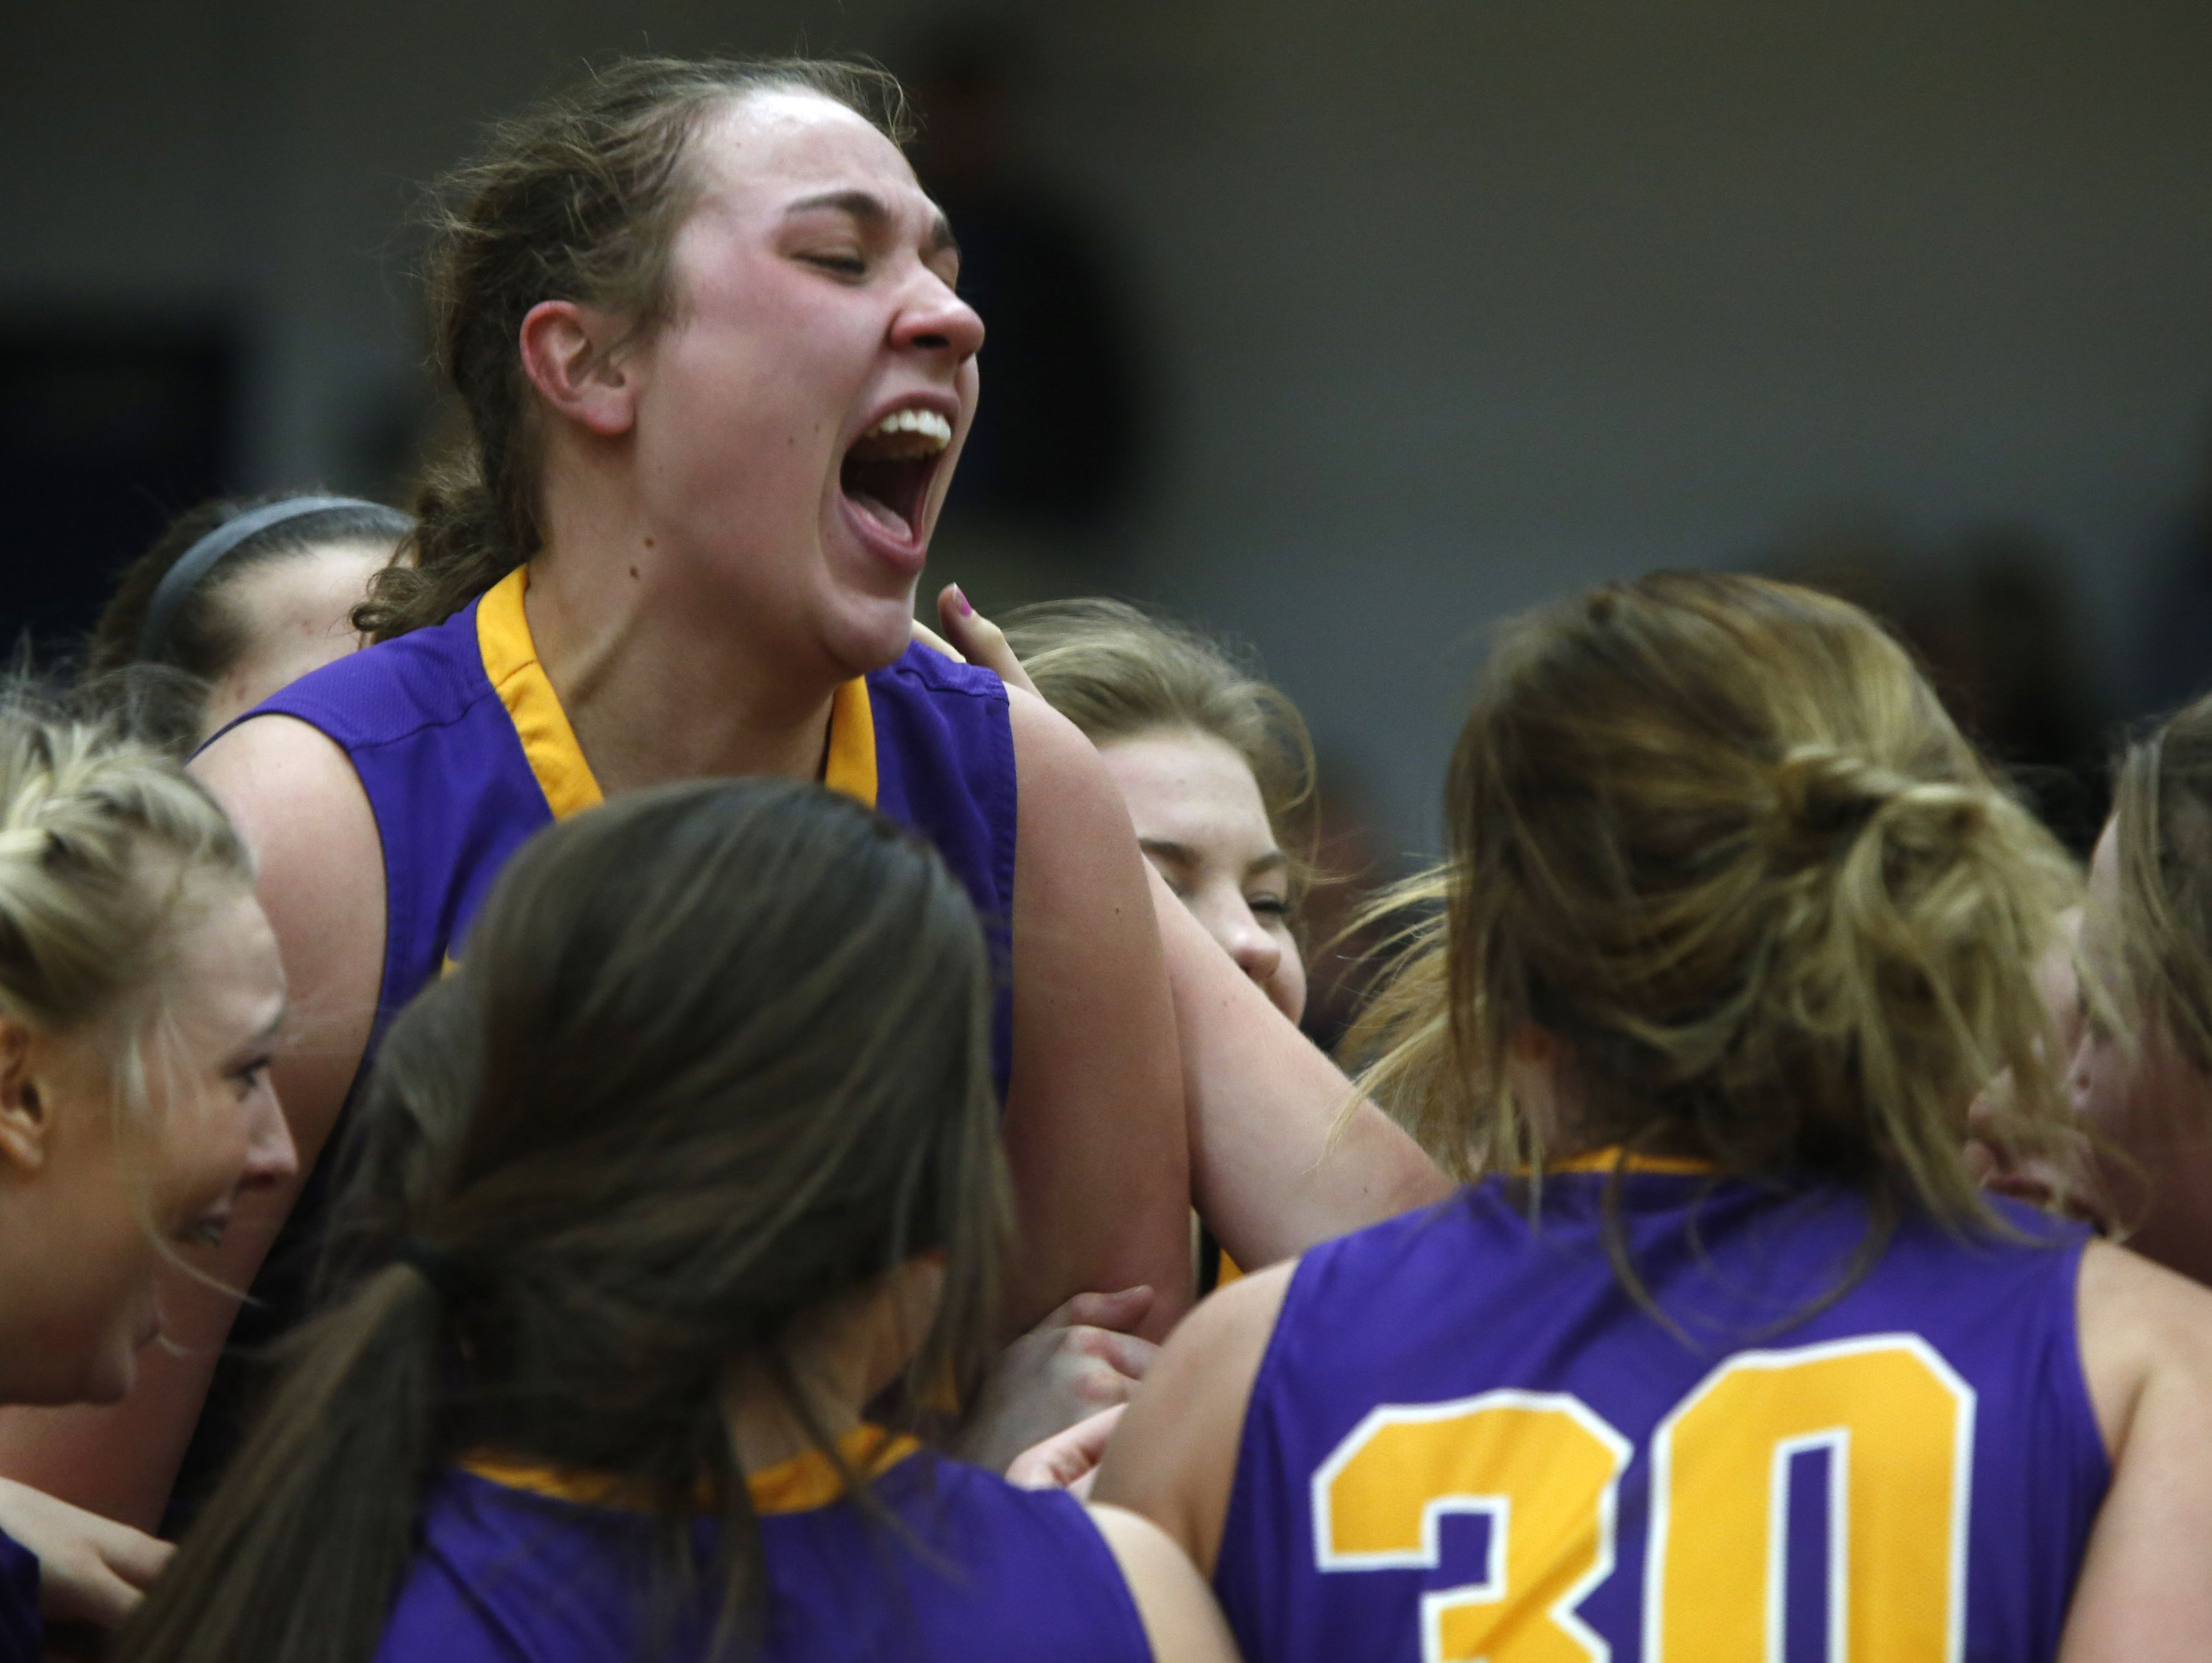 Eastern Pekin's Taylor Drury celebrates with teammates after their victory over Providence in the Indiana girls sectional final. Jan. 4, 2017.